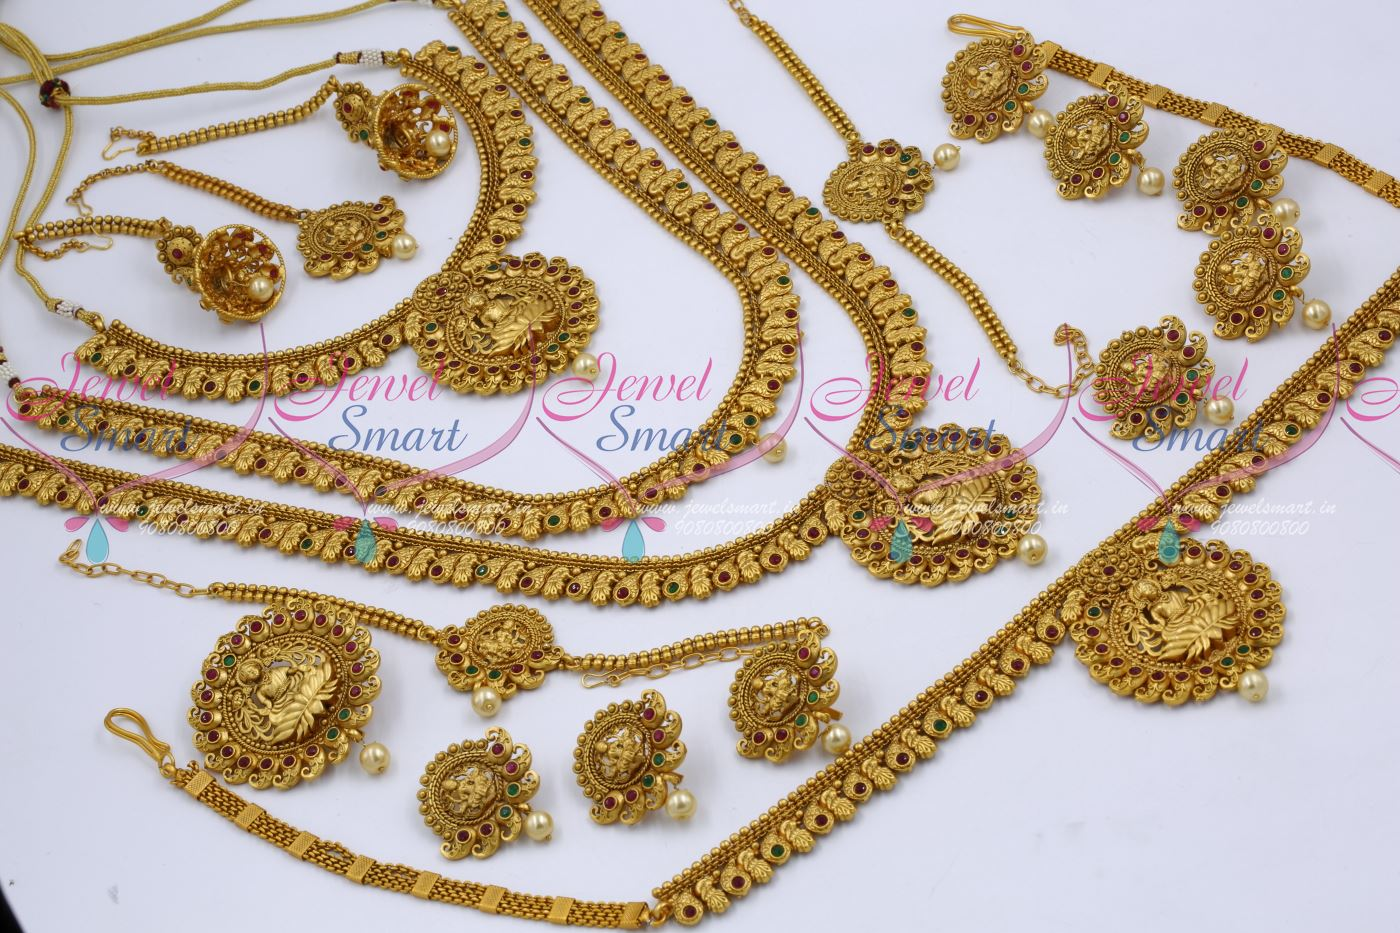 BR12604 Long Medium Short 3 Necklace Combo Bridal Jewellery Latest ...